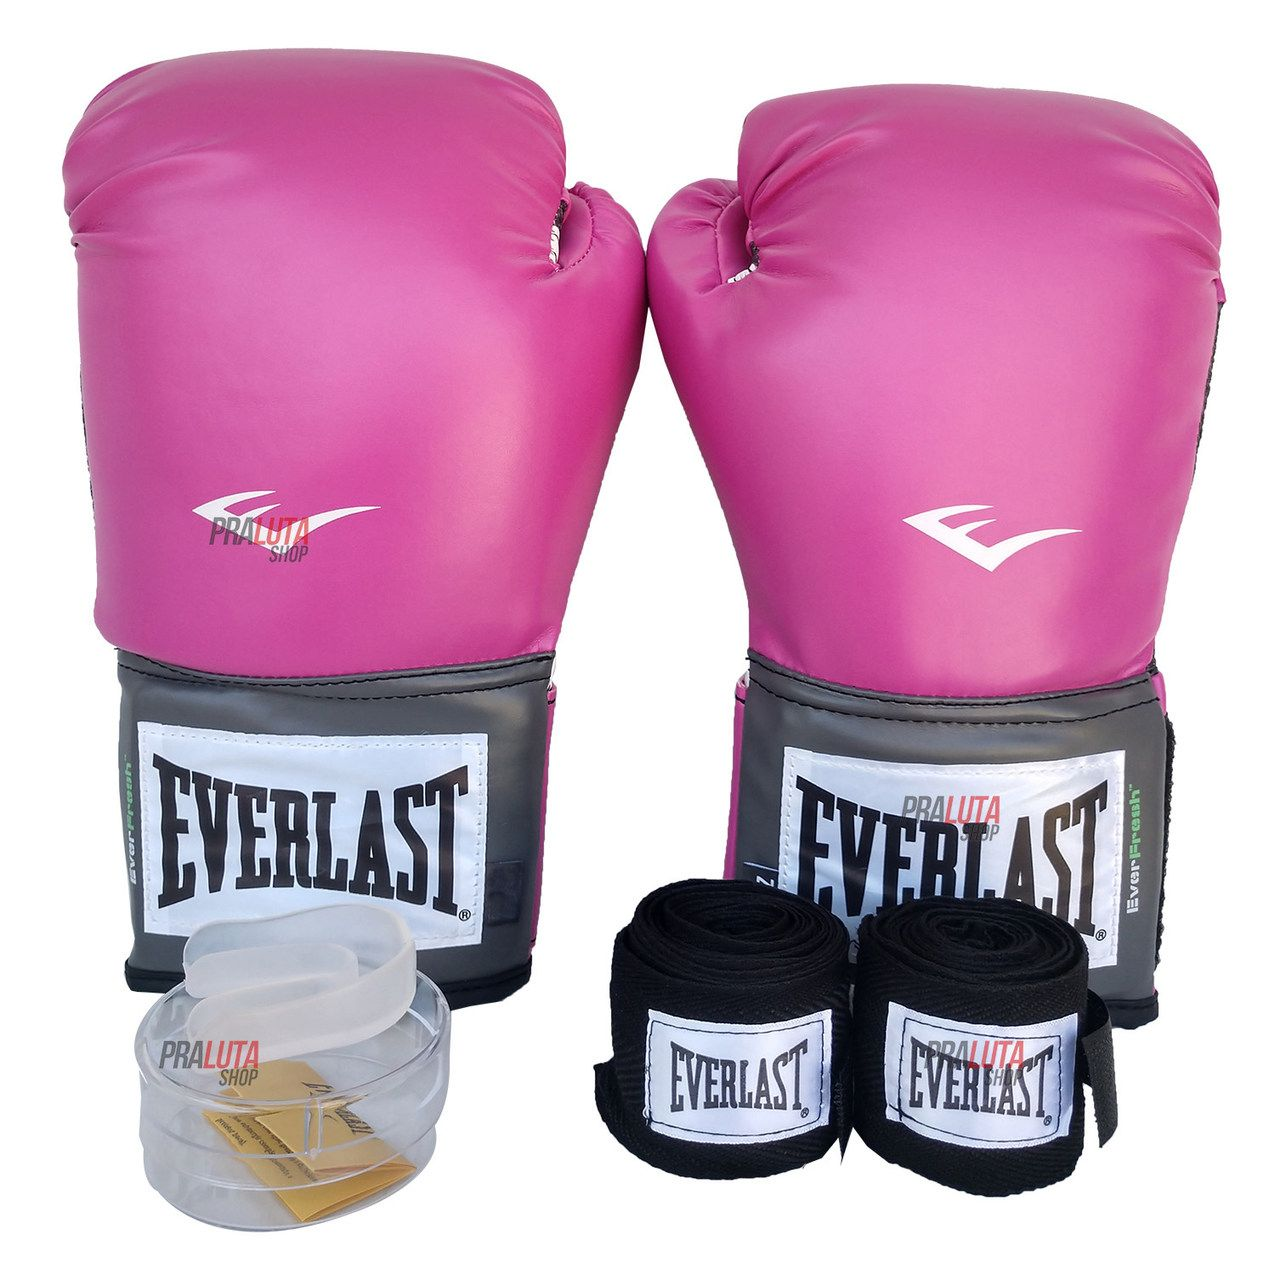 Kit de Boxe / Muay Thai Feminino 12oz - Rosa - Training - Everlast  - PRALUTA SHOP